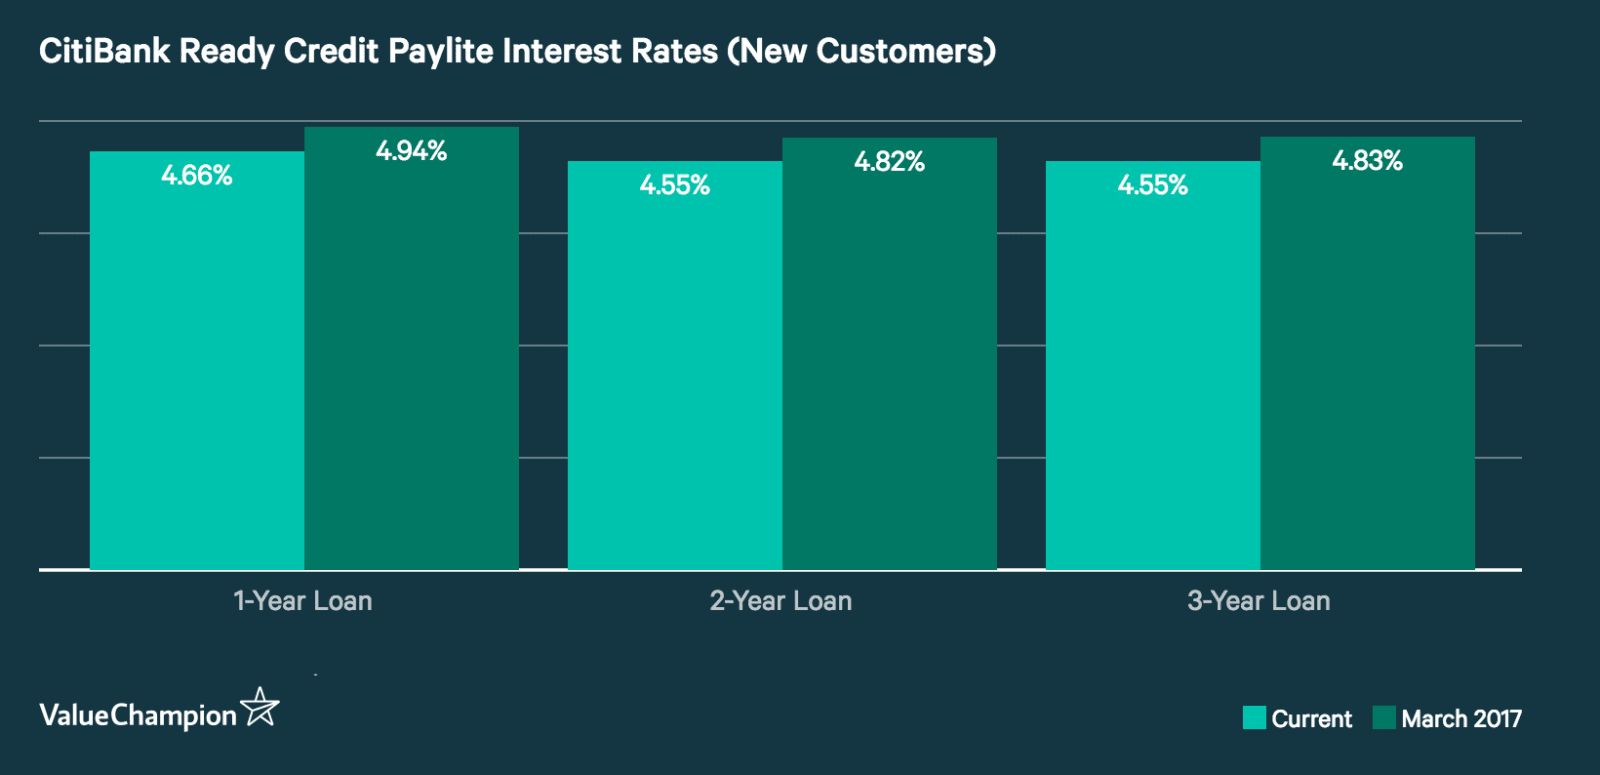 CitiBank Ready Credit Paylite Interest Rates (New Customers) 2017 vs 2018